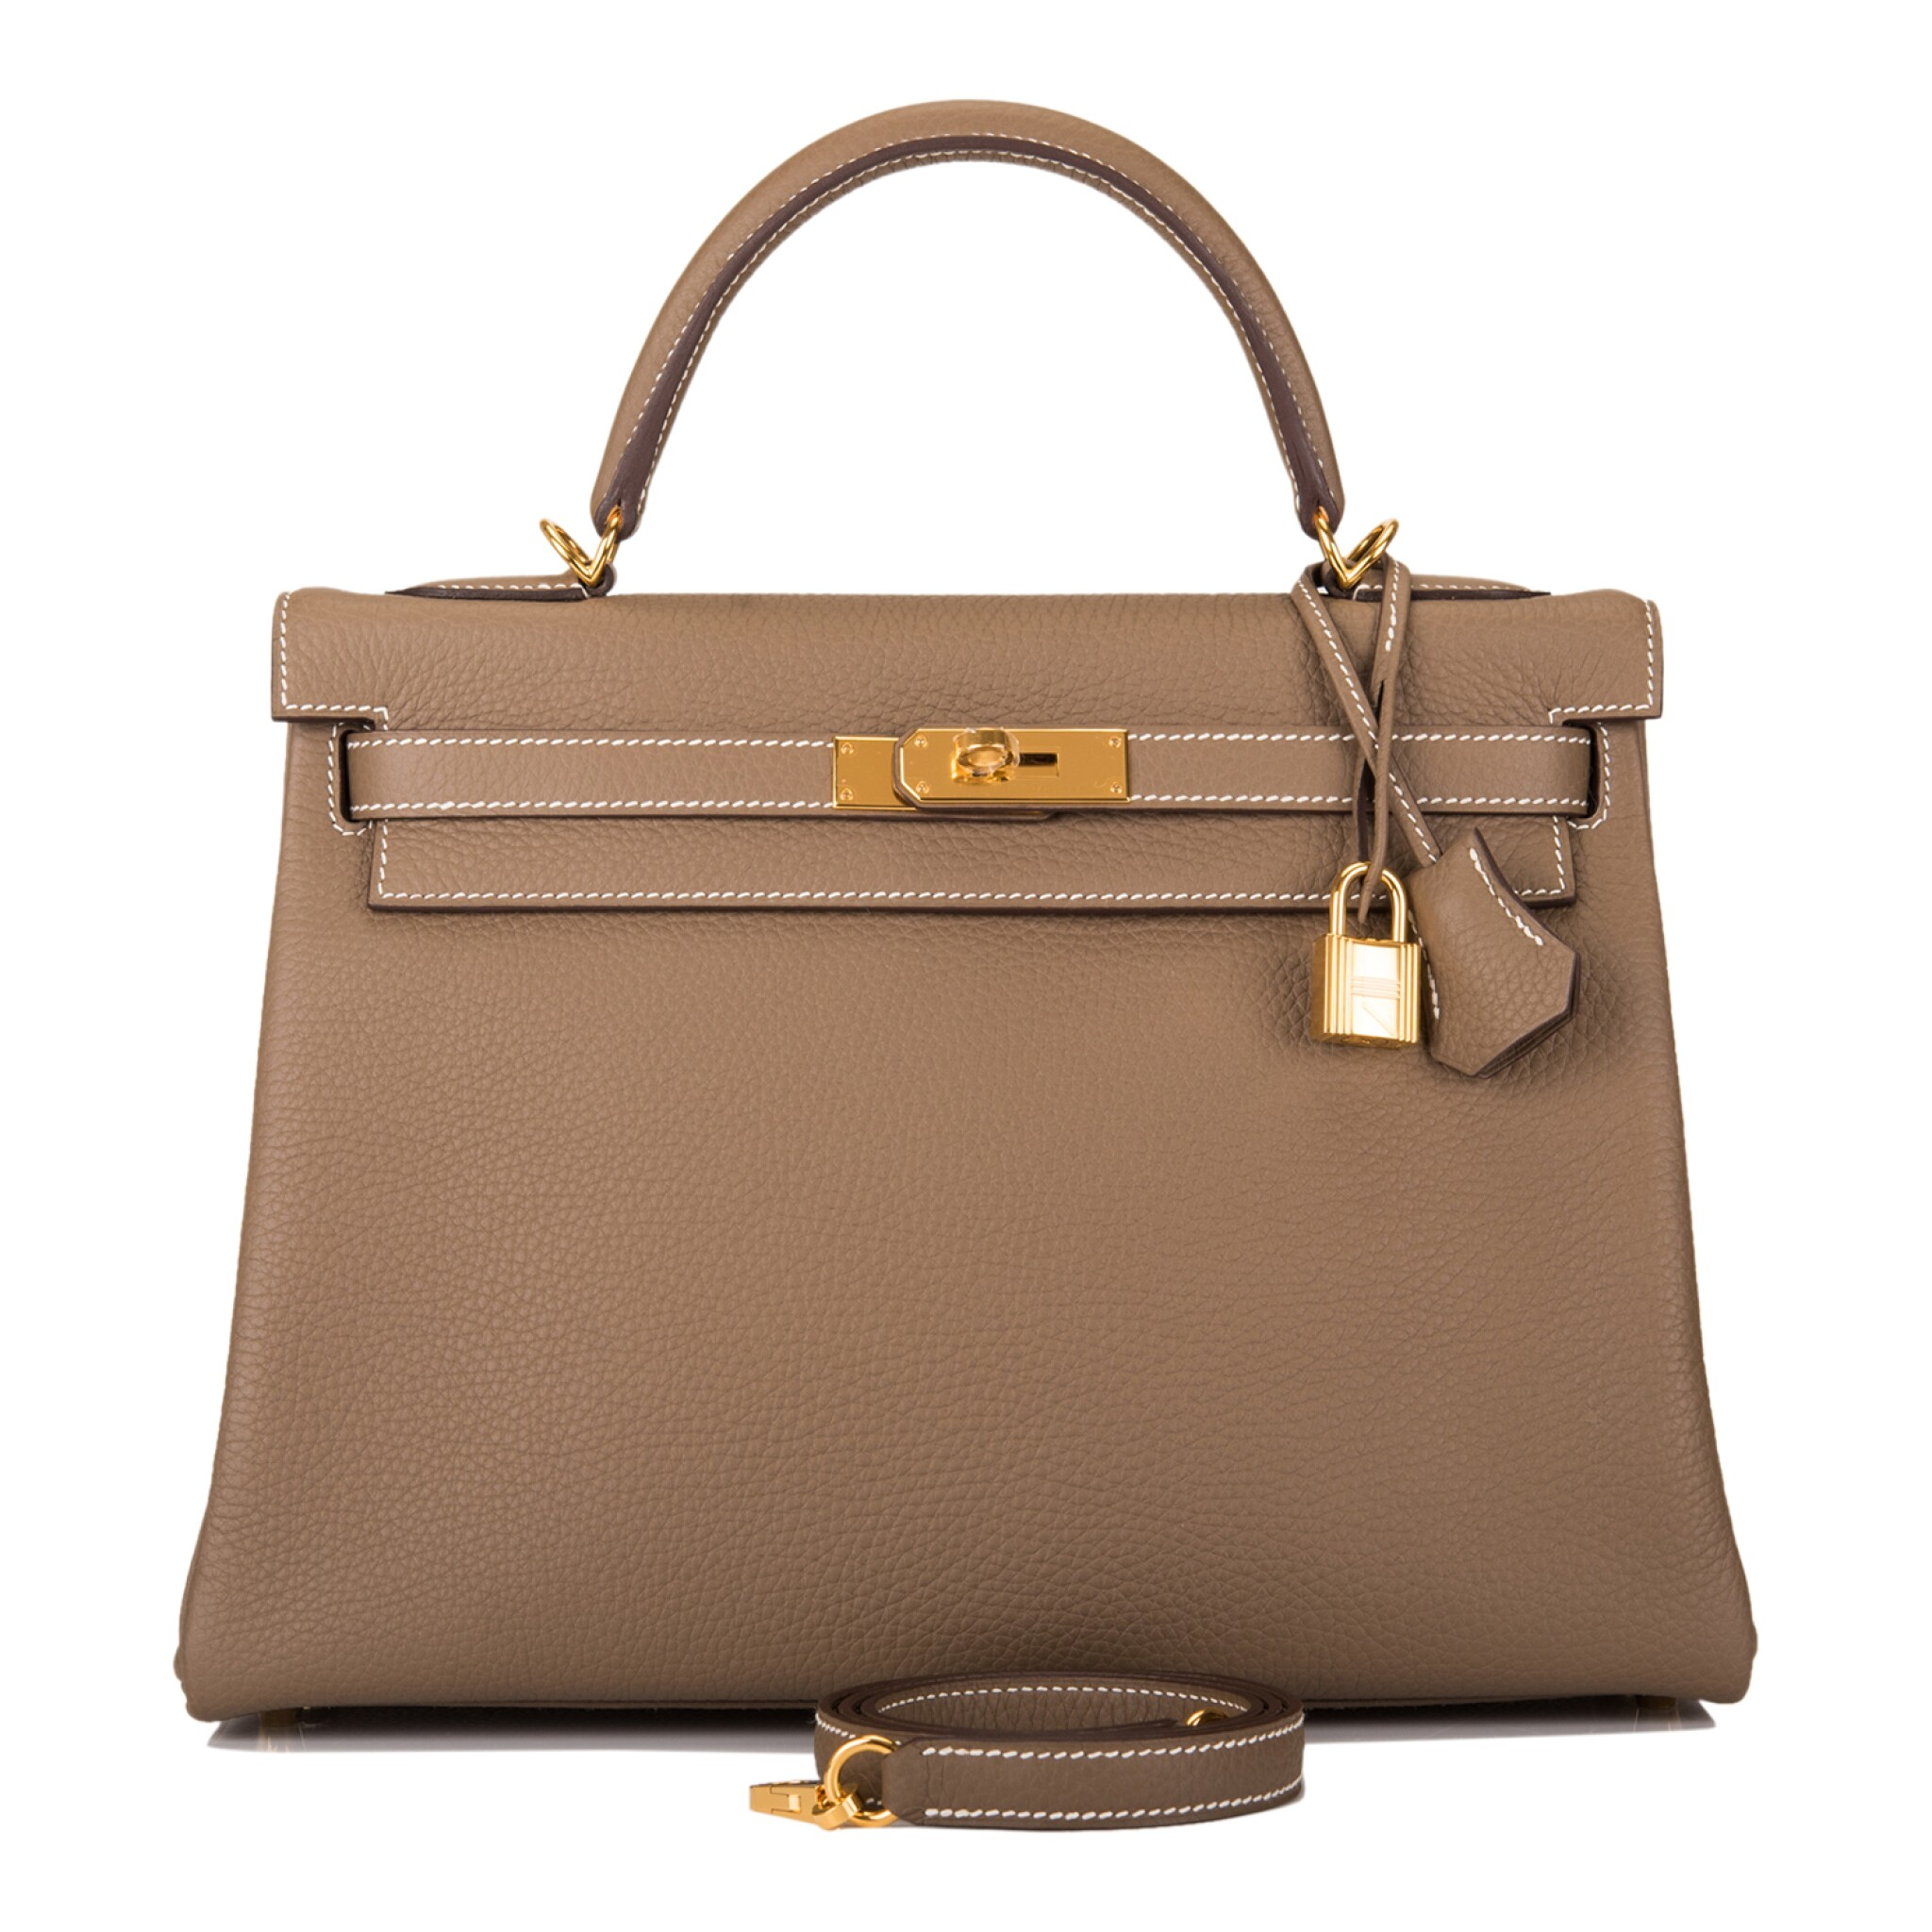 View full screen - View 1 of Lot 70. HERMÈS | ETOUPE RETOURNE KELLY 32CM OF TAURILLON CLEMENCE LEATHER WITH GOLD HARDWARE.